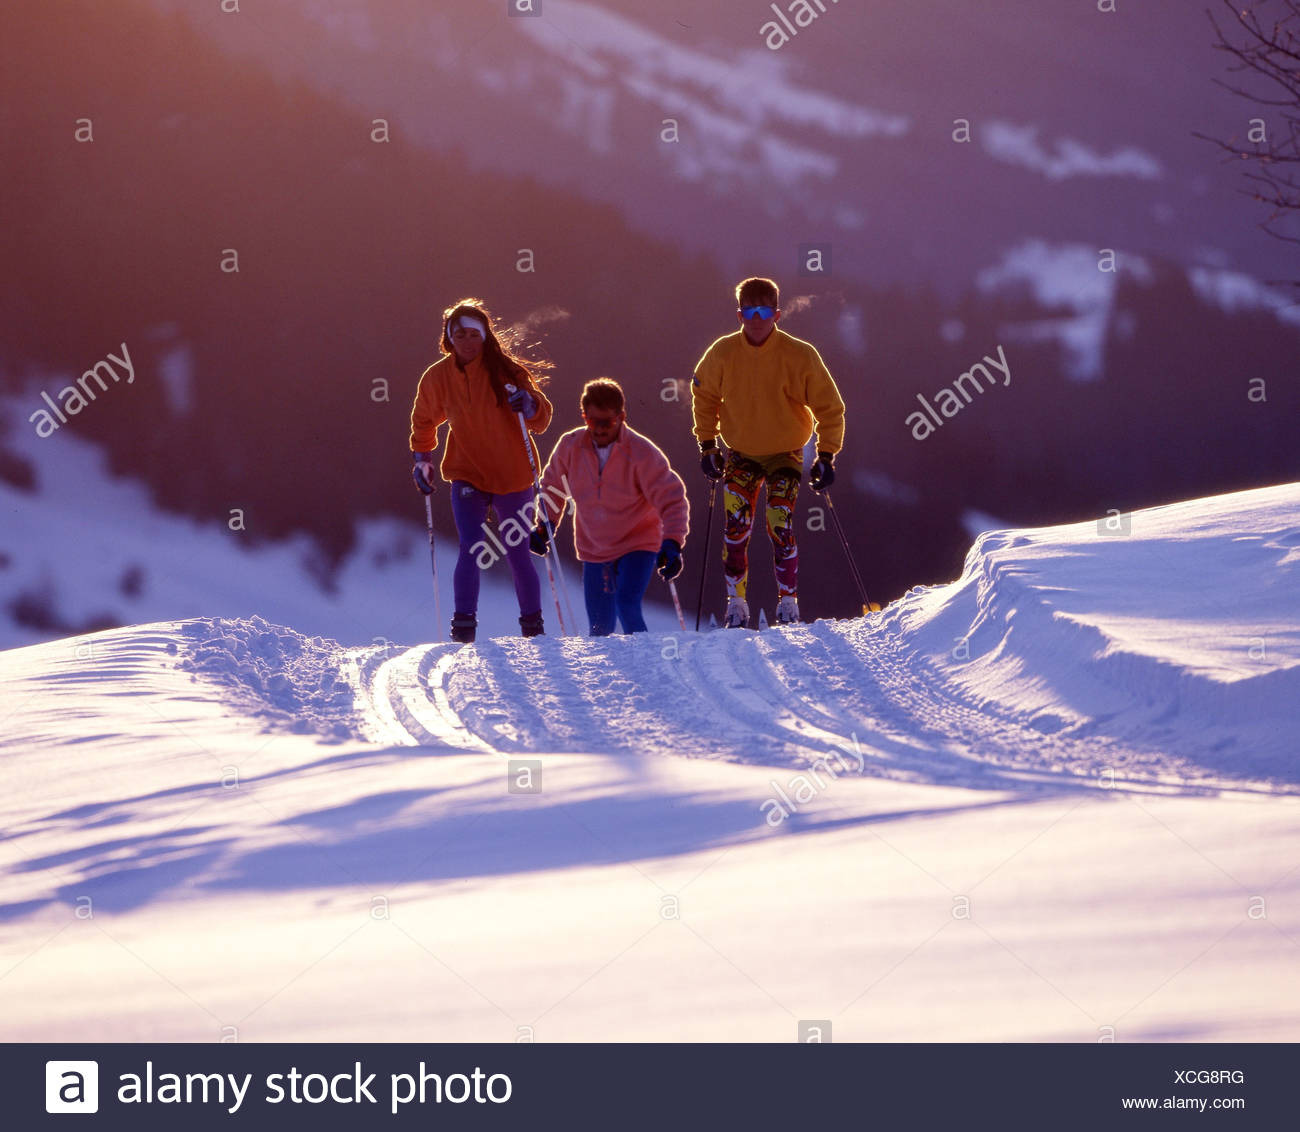 cross-country skiing cross-country skiing winter winter sports group mood - Stock Image